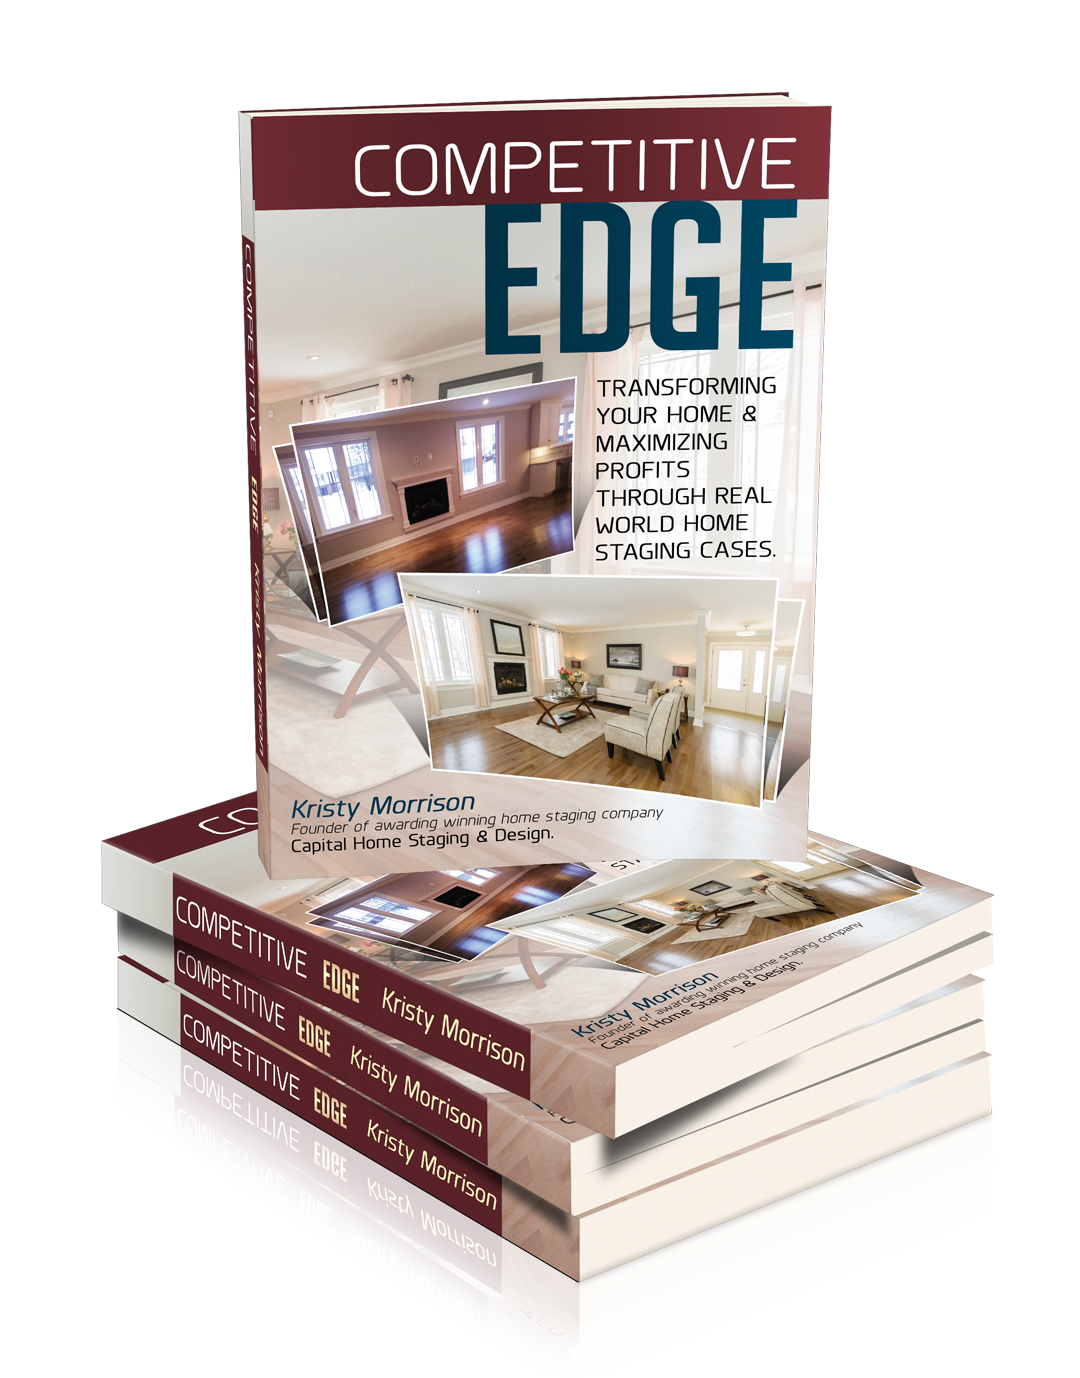 Competitive edge book spring 2014 capital home staging design ottawa home stager for Capital home staging and design